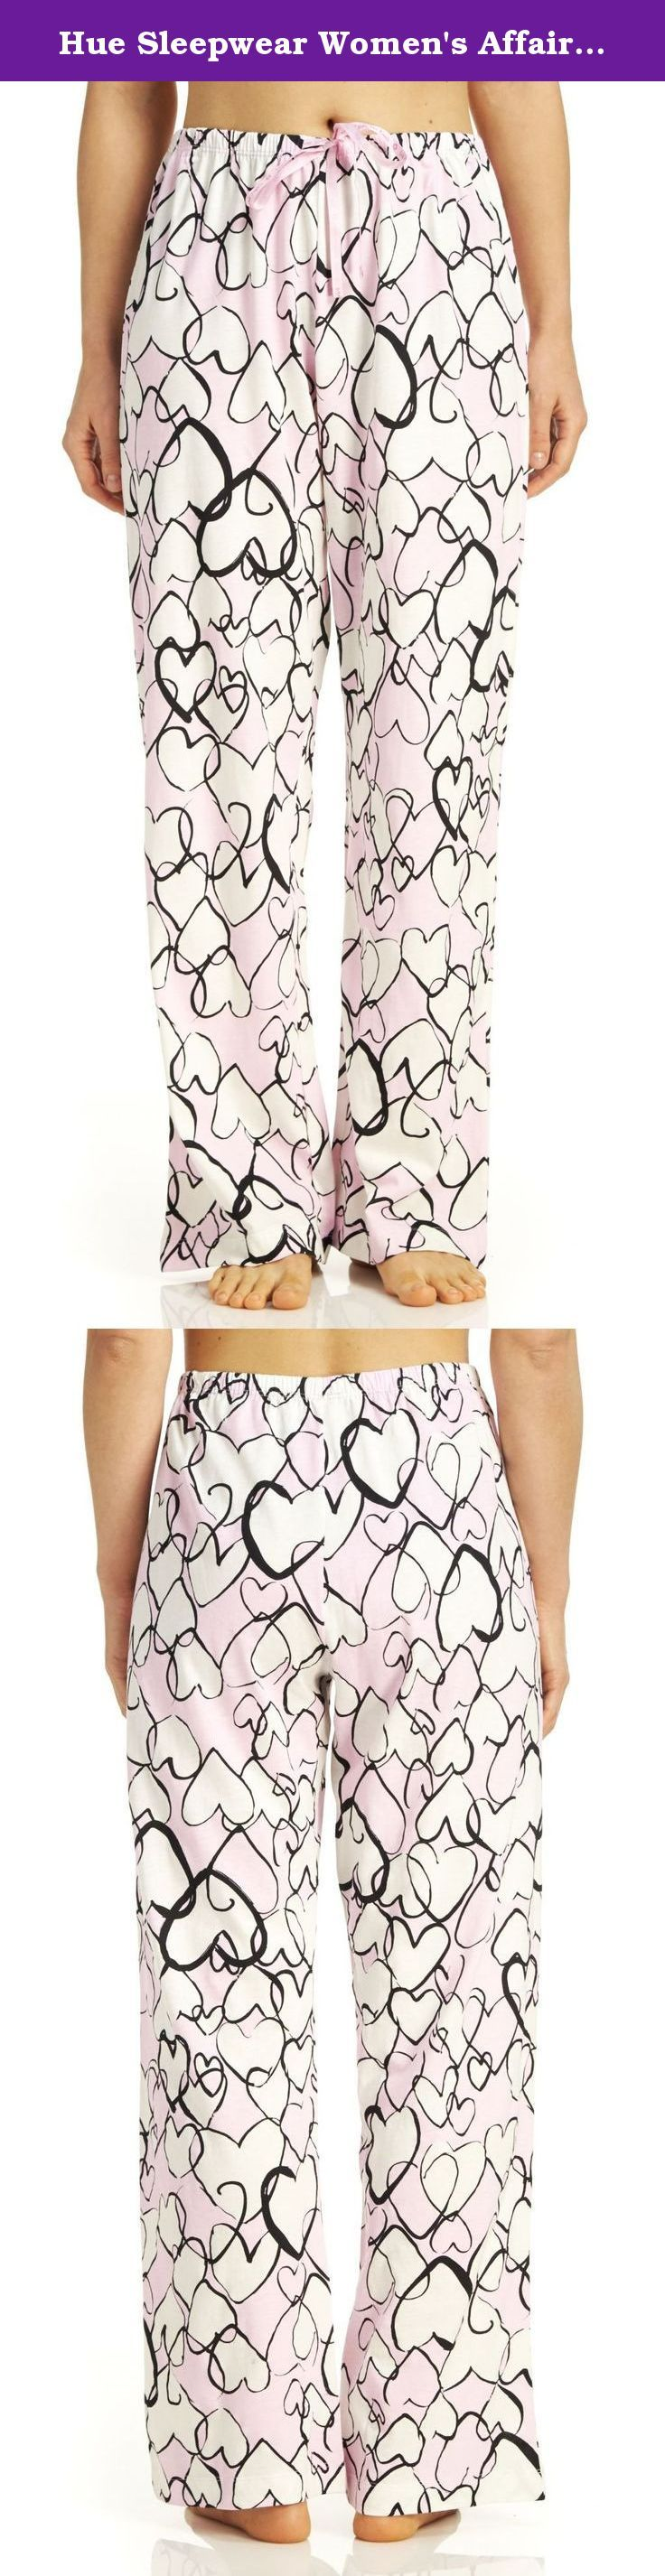 Hue Sleepwear Women's Affair Of The Heart Long Pajama Pant, Pink Lady, XLarge. This Hue Sleepwear Women's Affair Of The Heart Long Pajama Pant will provide you will comfort throughout the night. Pajama pants Elastic waistband with drawstring All over heart graphics 100% Cotton.